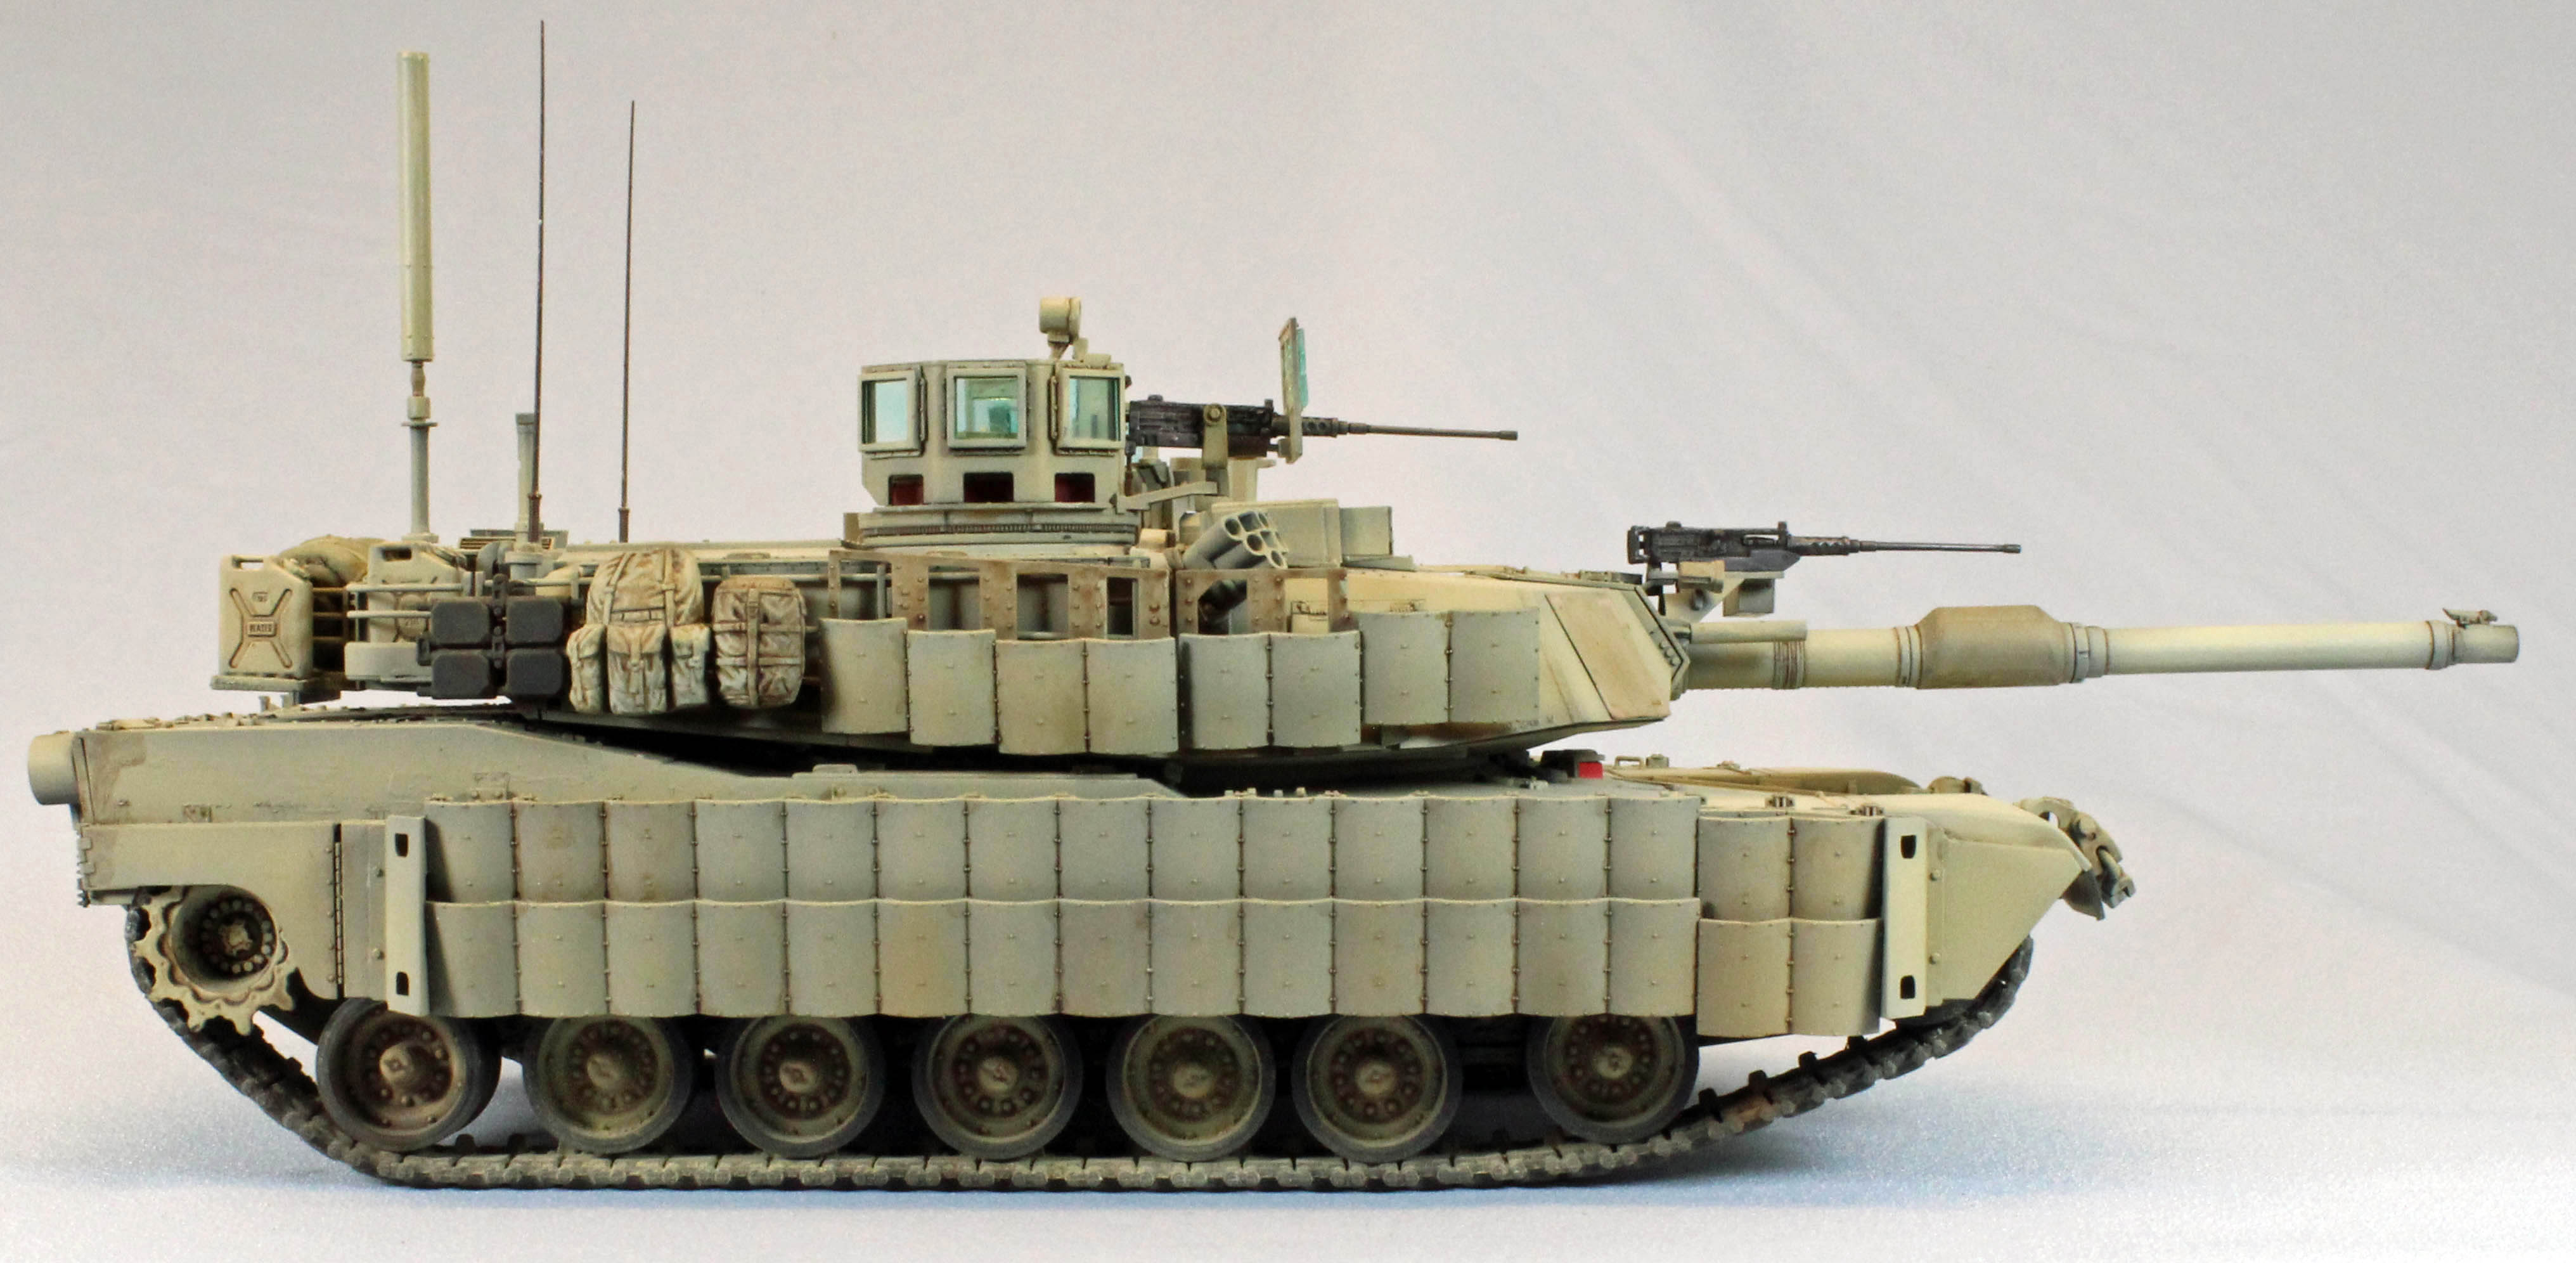 M1 Abrams Block III - a promising tank that did not see the light